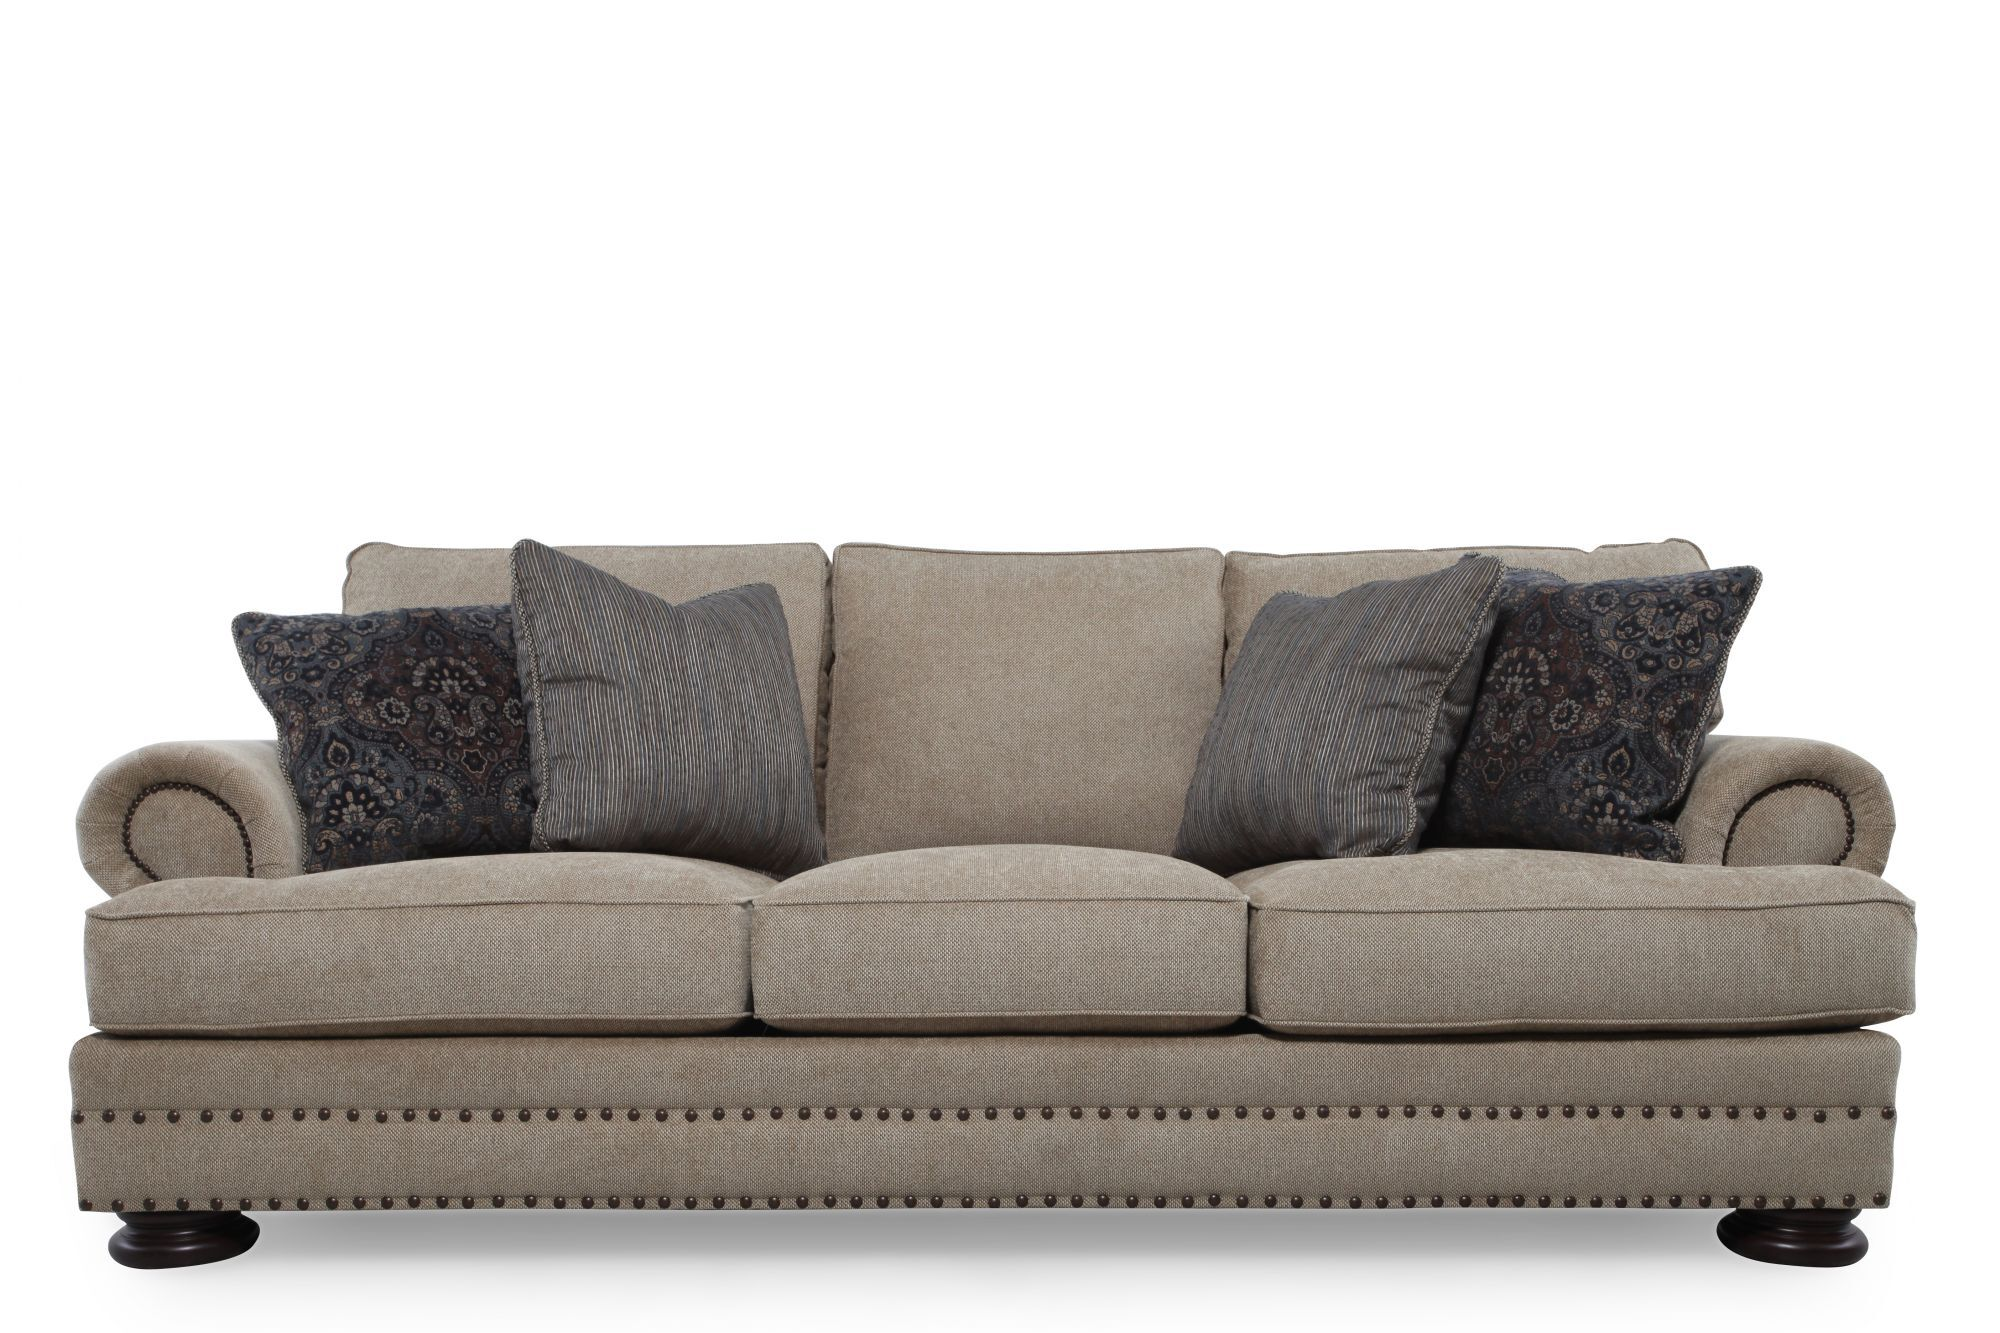 bernhardt sofas sofa warehouse manchester foster brown mathis brothers furniture